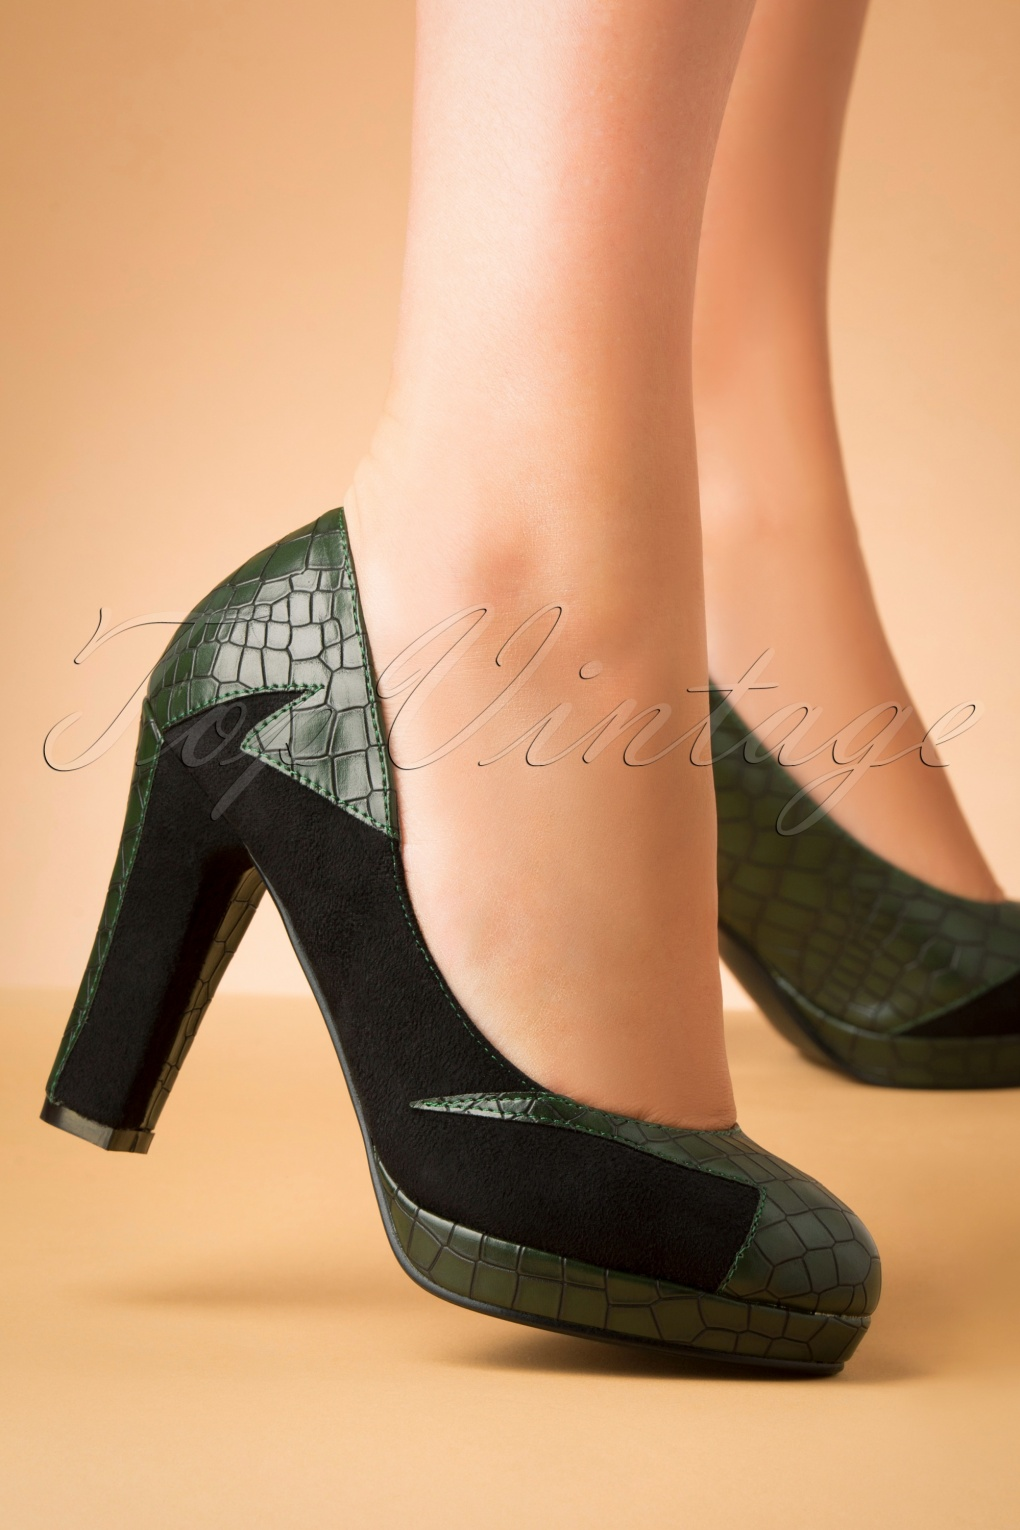 1950s Style Shoes | Heels, Flats, Saddle Shoes 50s Bloom At Night Pumps in Green £53.38 AT vintagedancer.com